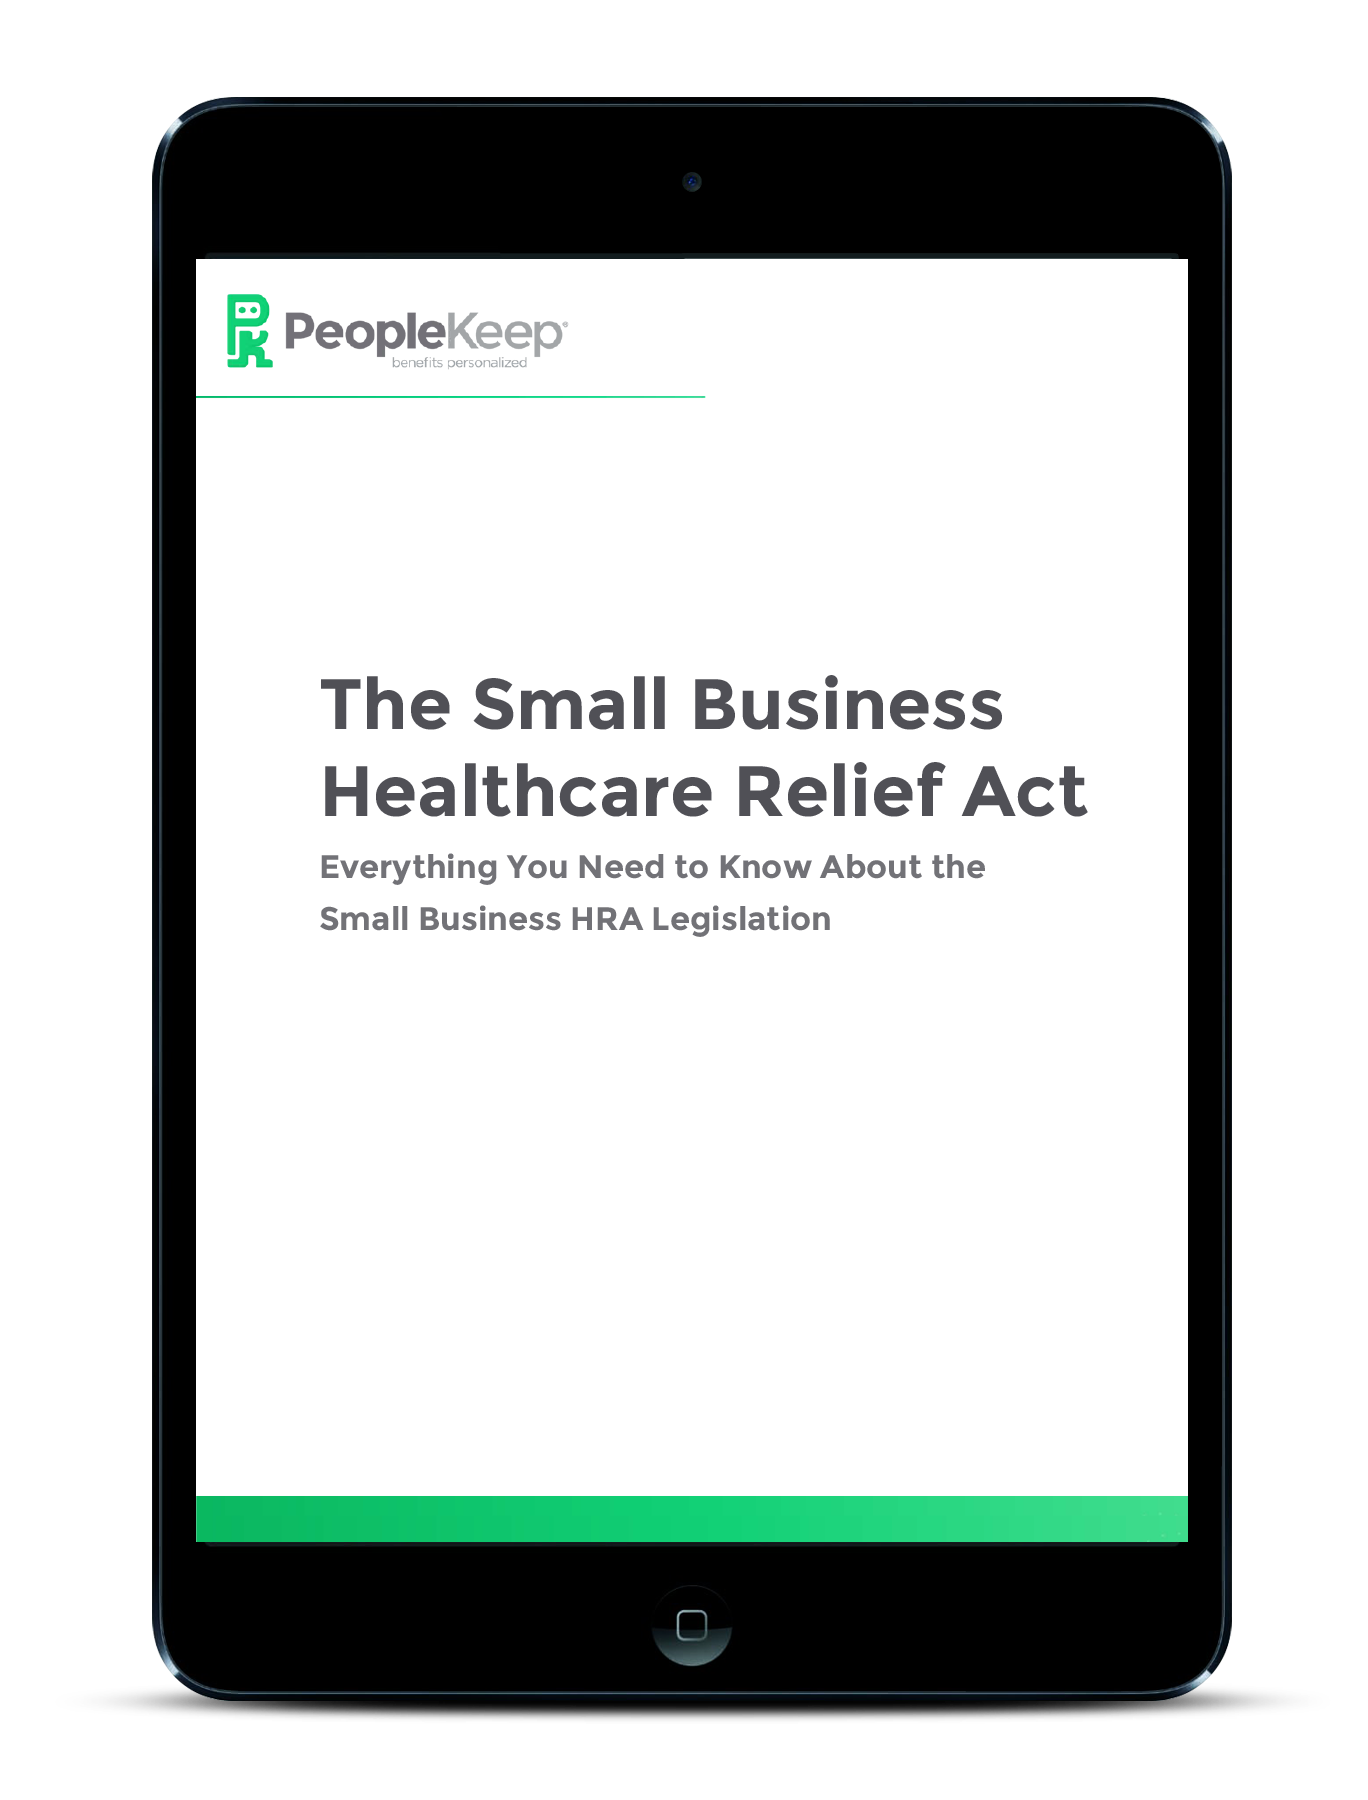 The Small Business Healthcare Relief Act